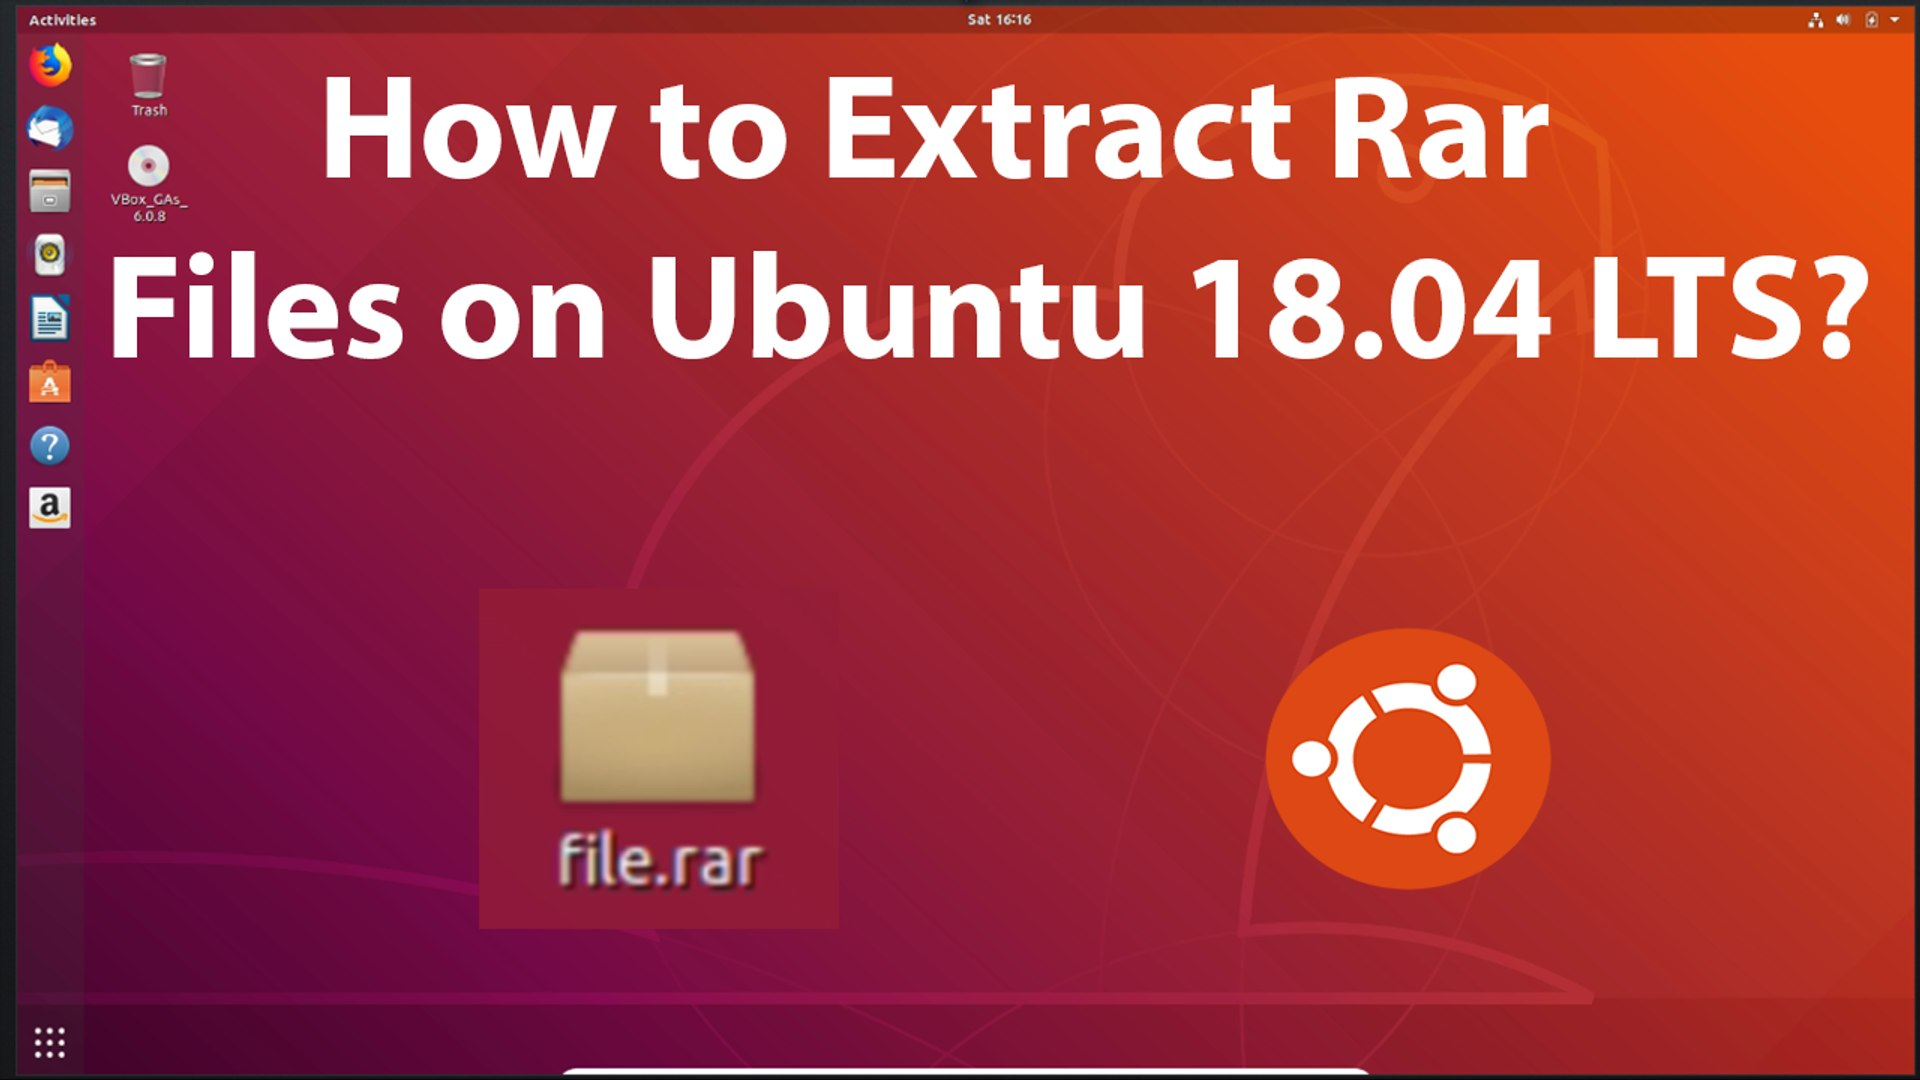 How to Extract RAR Files on Ubuntu 18 04 LTS?